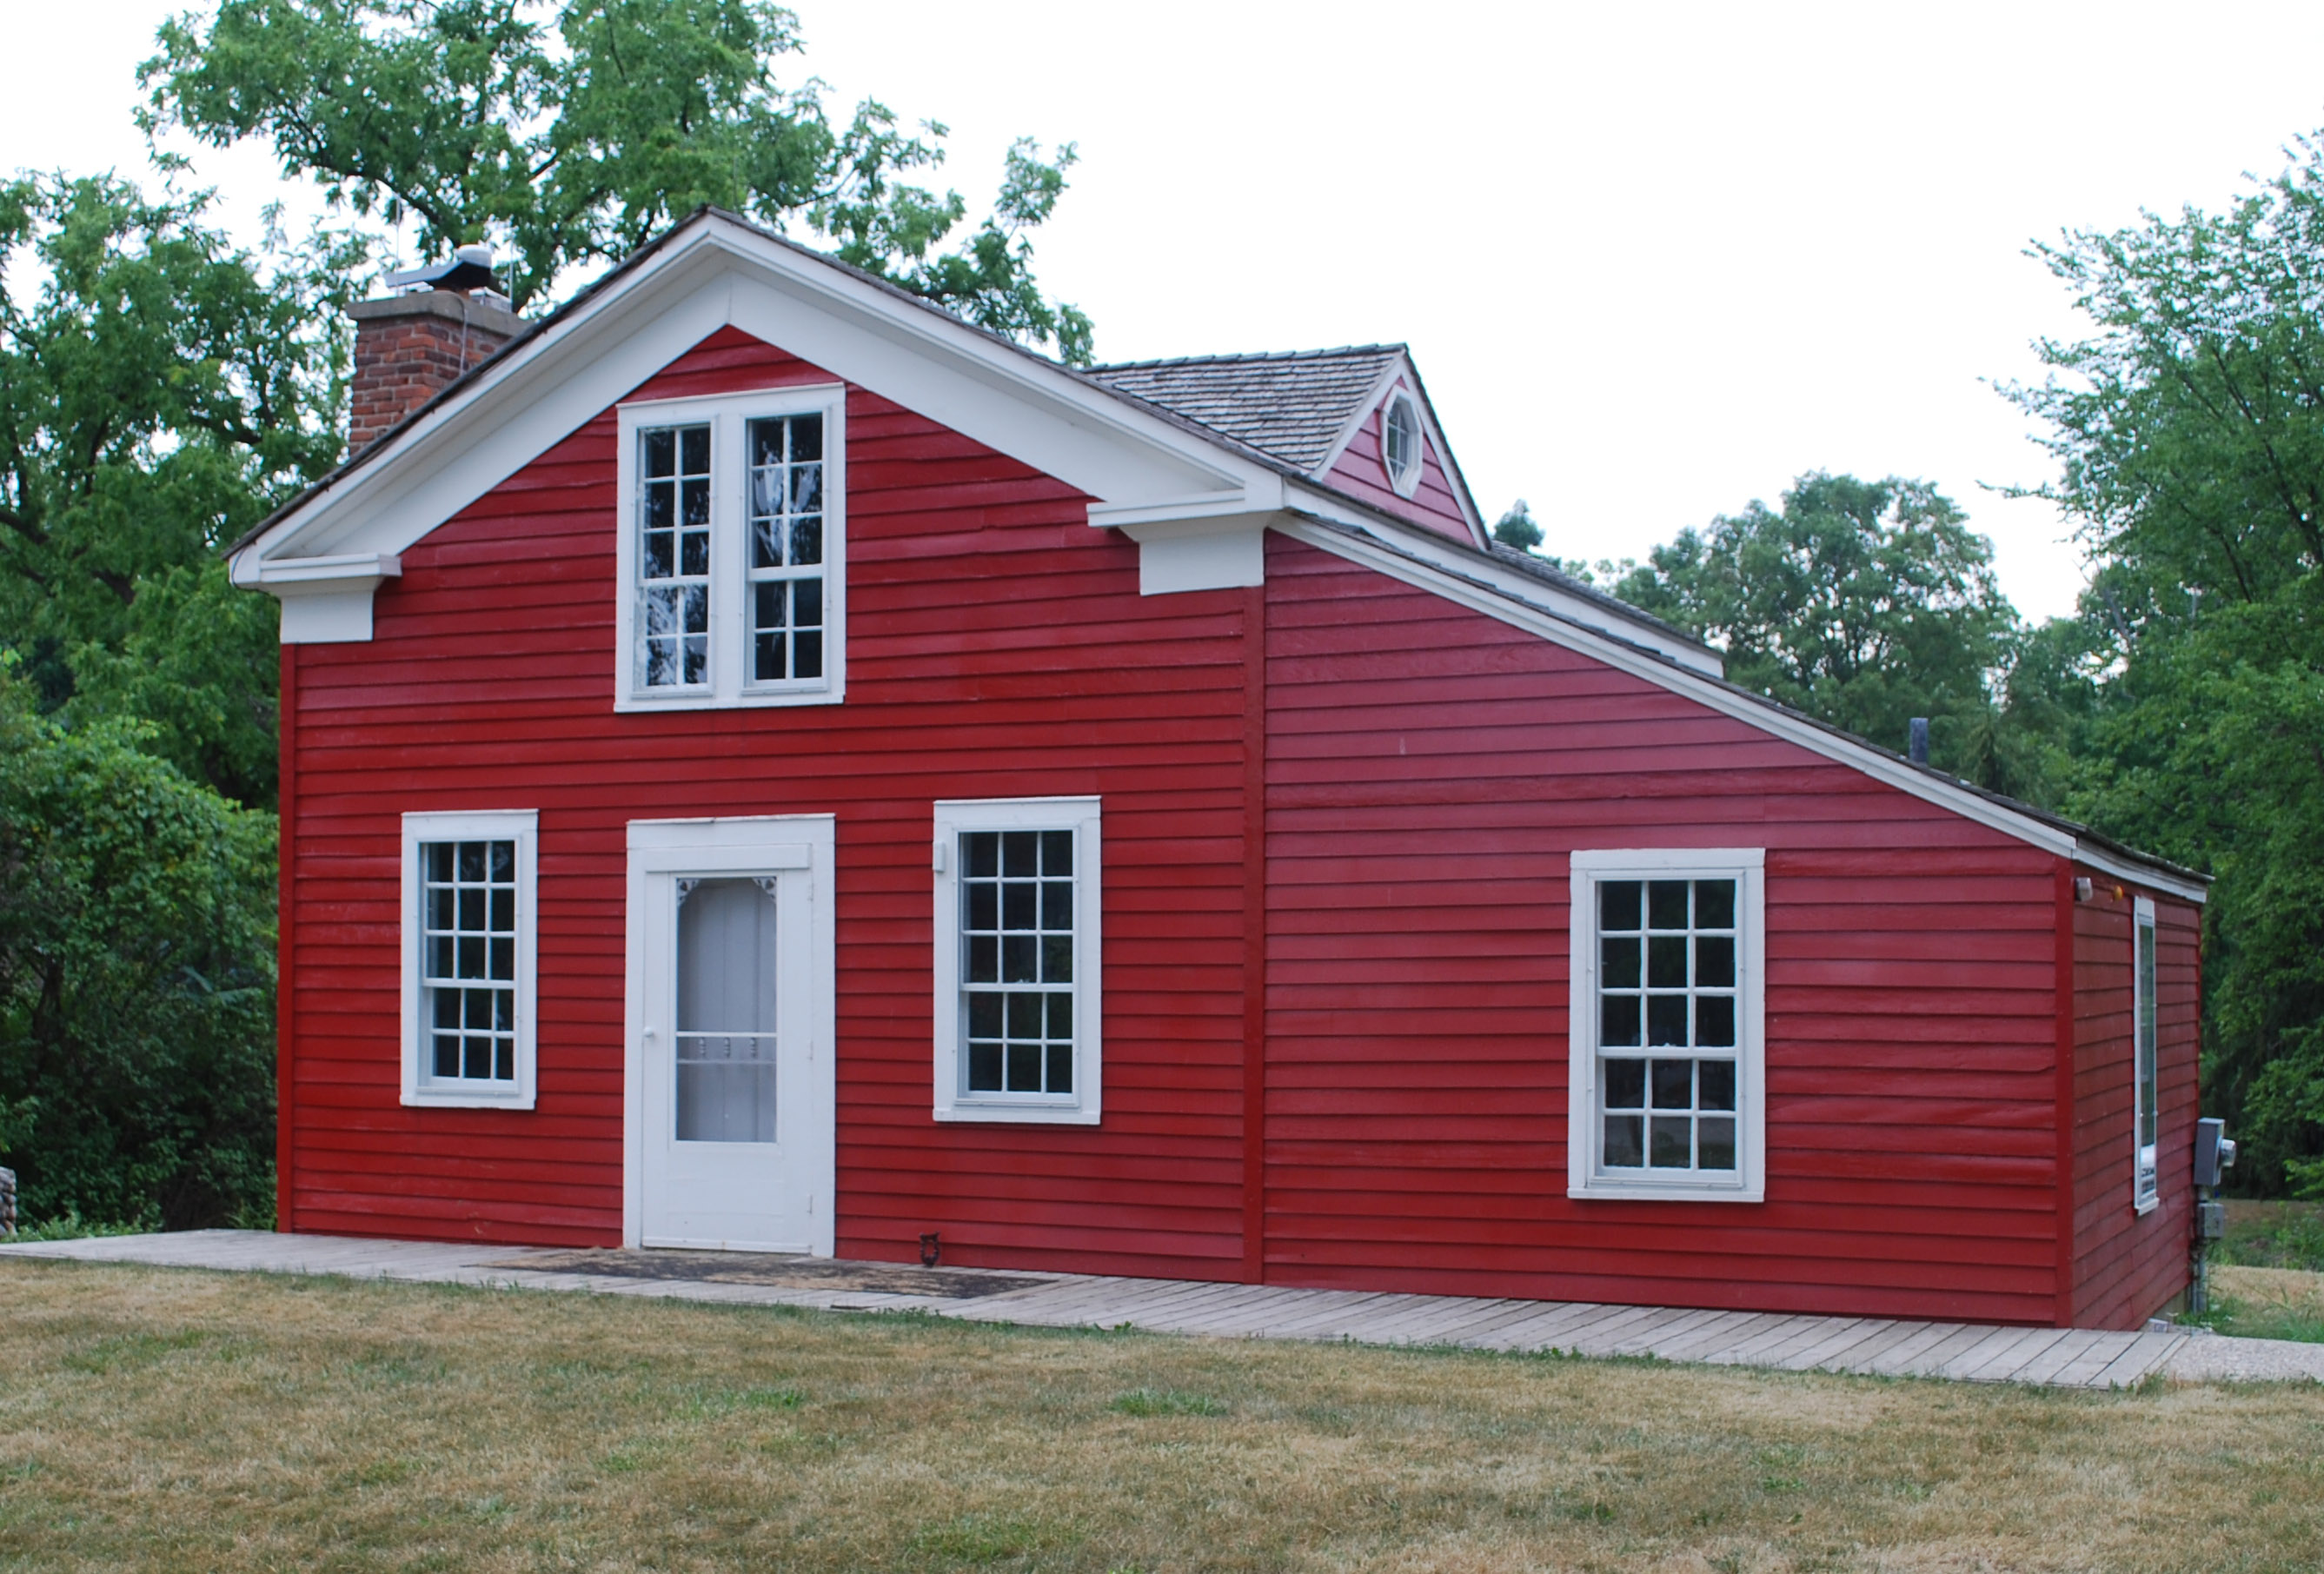 Home Picture Alluring Of Red House Pictures